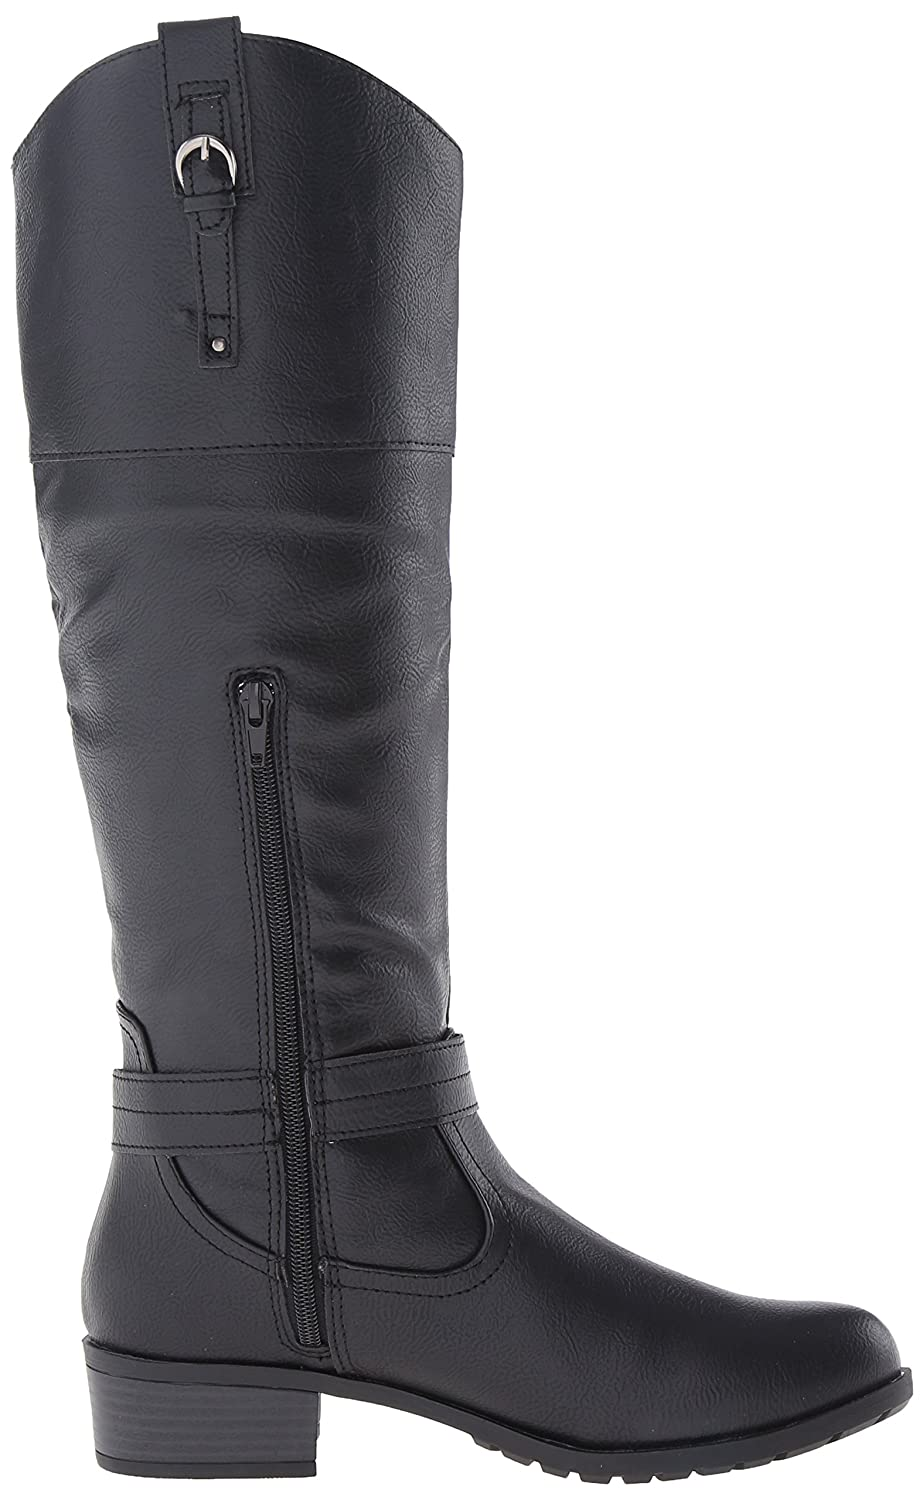 Rampage High Women's Ivelia Fashion Knee High Rampage Casual Riding Boot (Available In Wide Calf) B076HCHFN9 8.5 M US Wide Shaft|Black 3e96a7